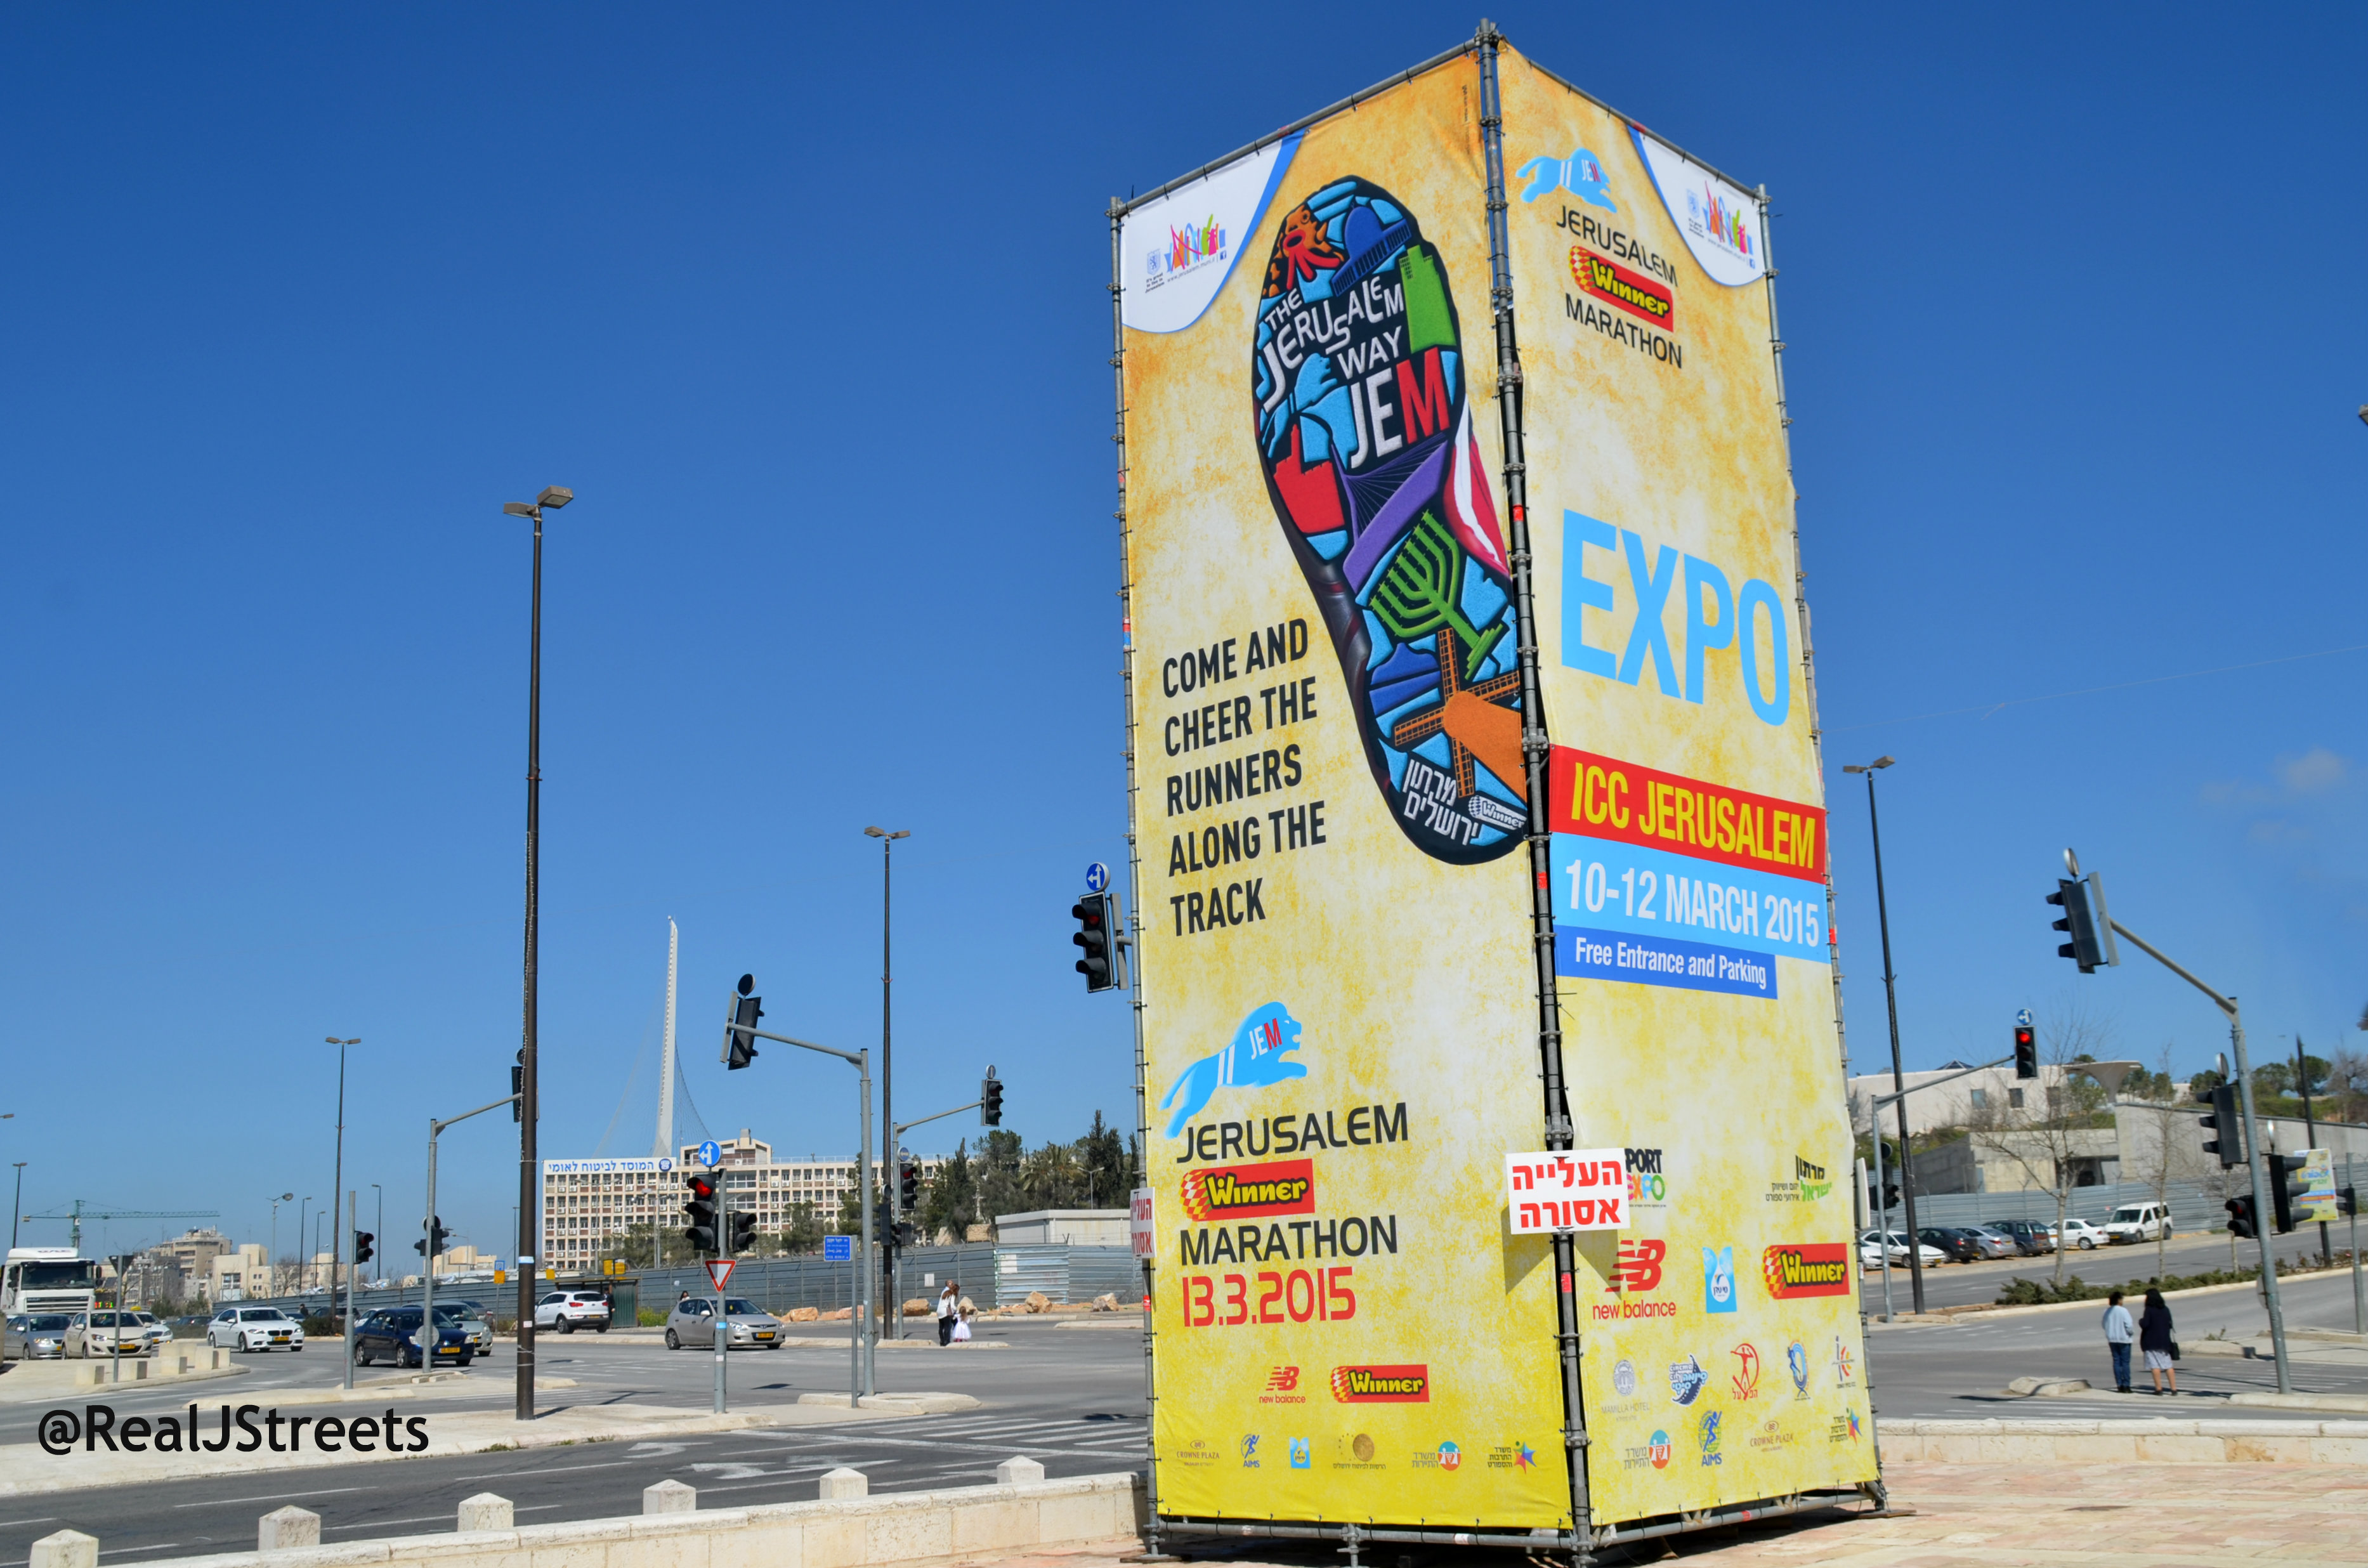 ad for Jerusalem marathon